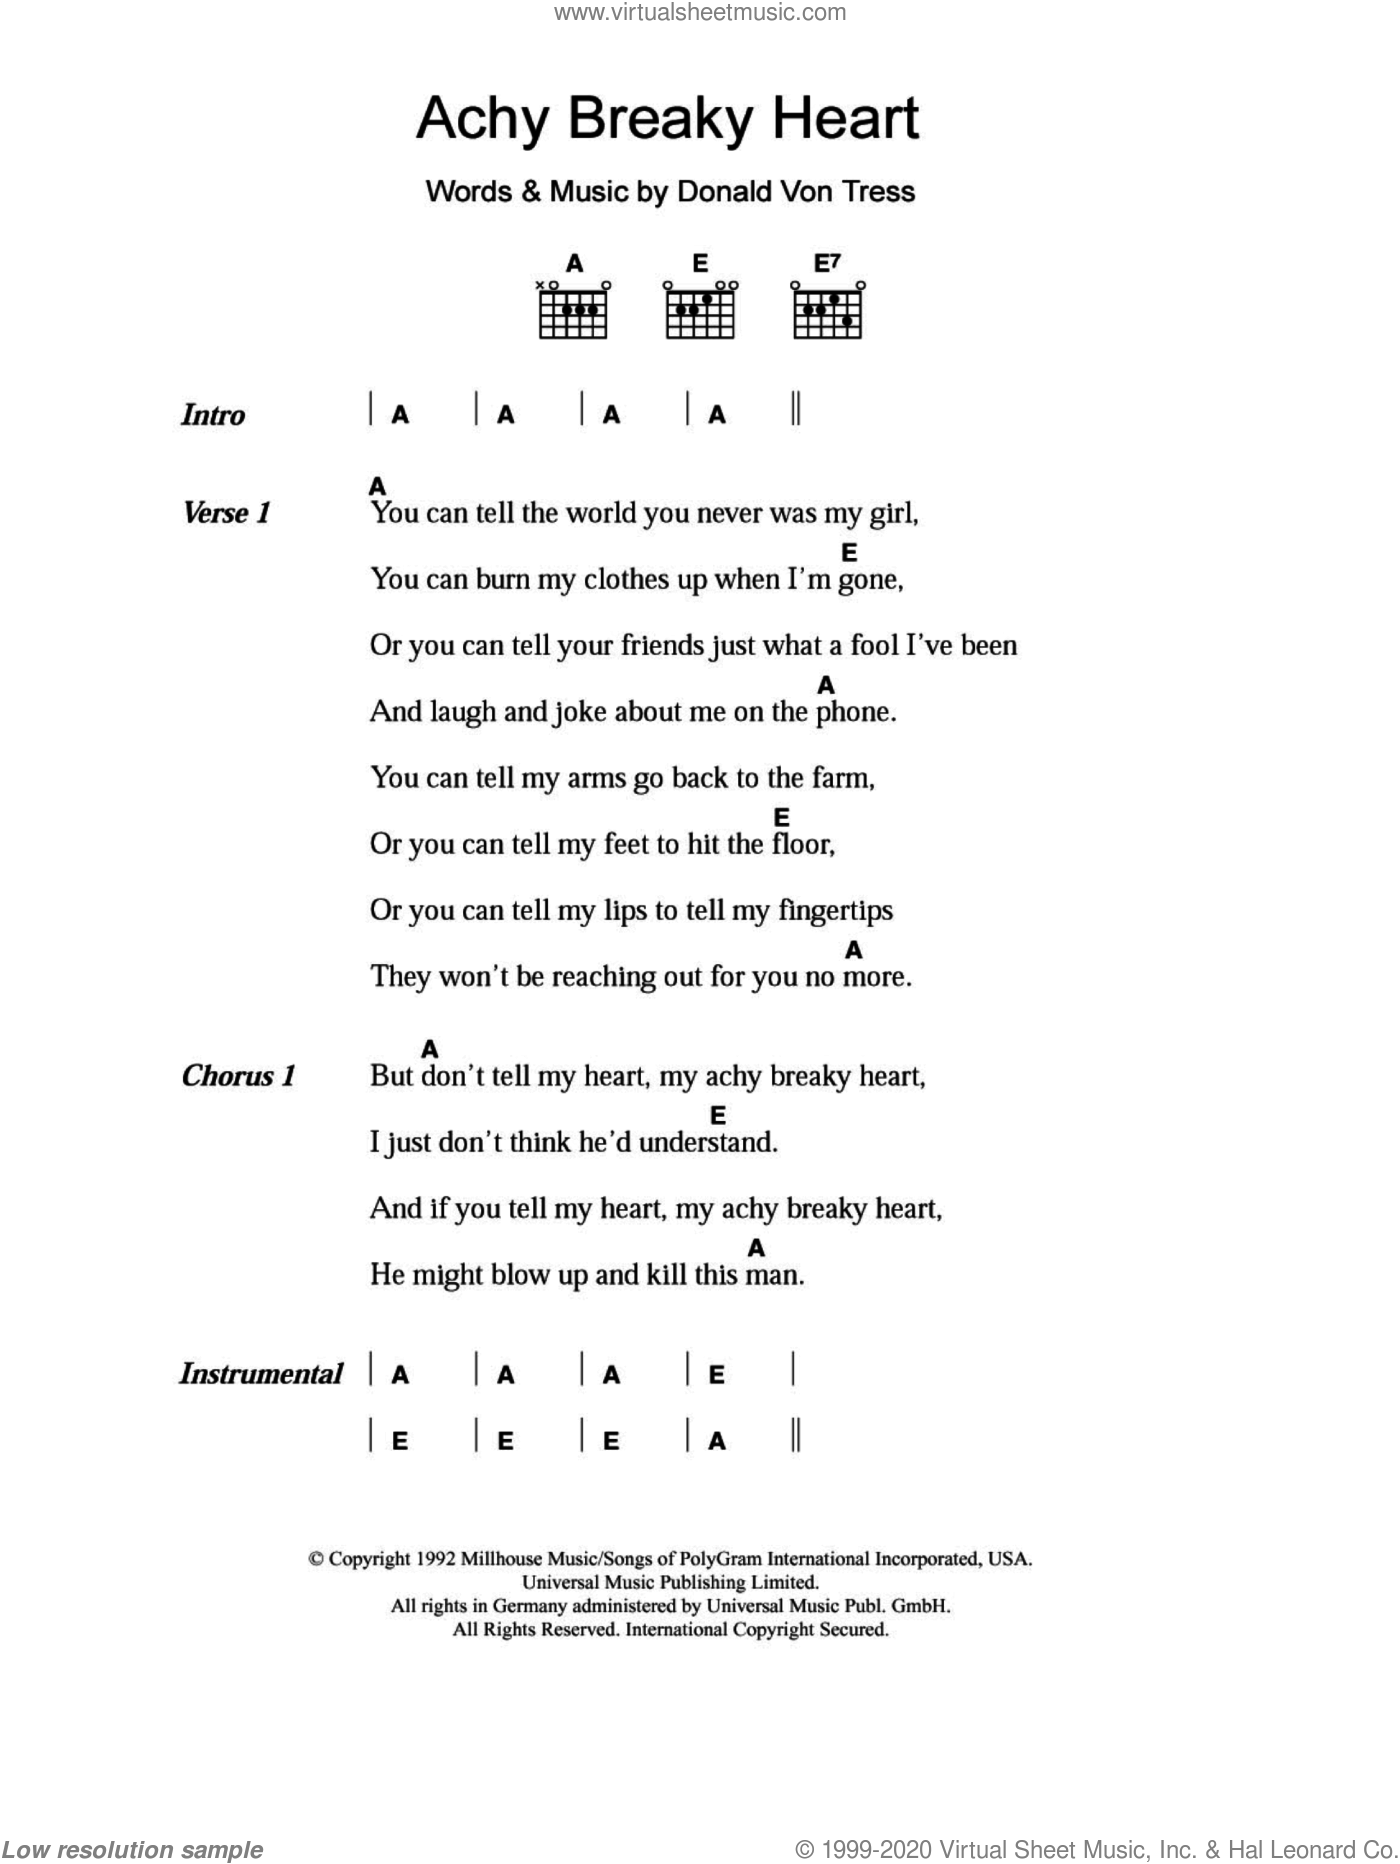 Achy Breaky Heart sheet music for guitar (chords) by Don Von Tress